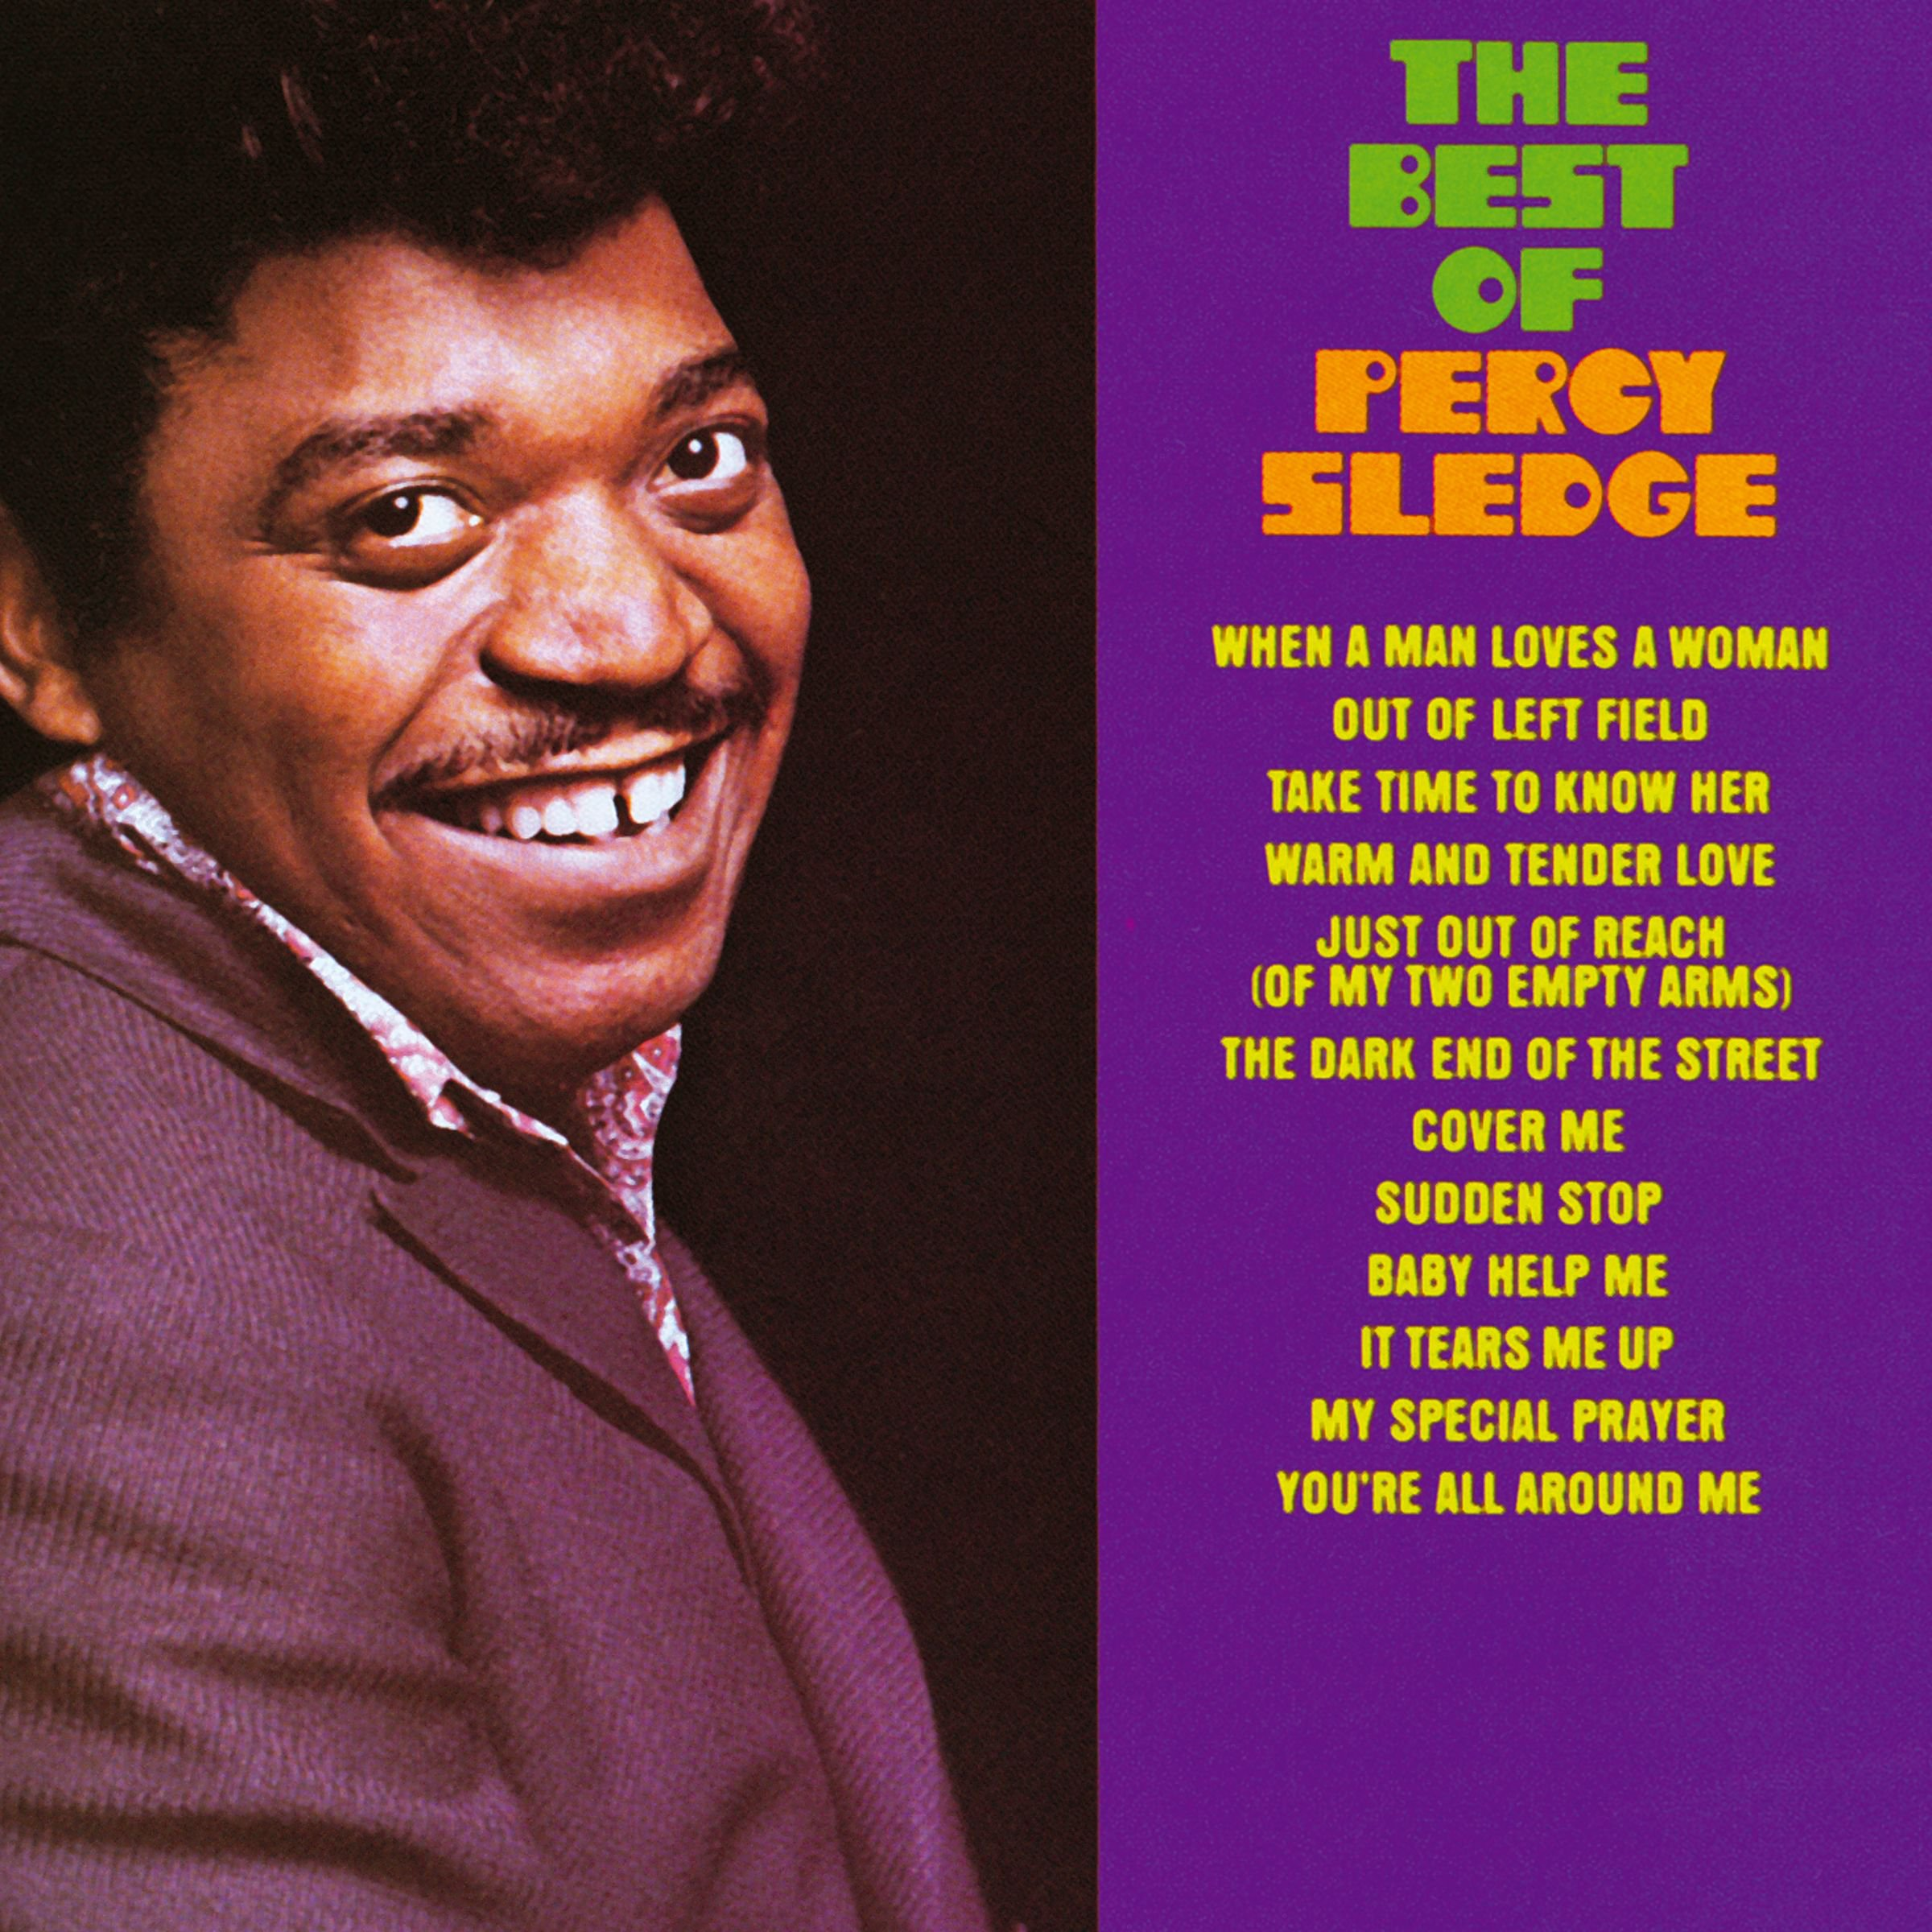 Percy Sledge - The Best Of Percy Sledge - CD – Rough Trade